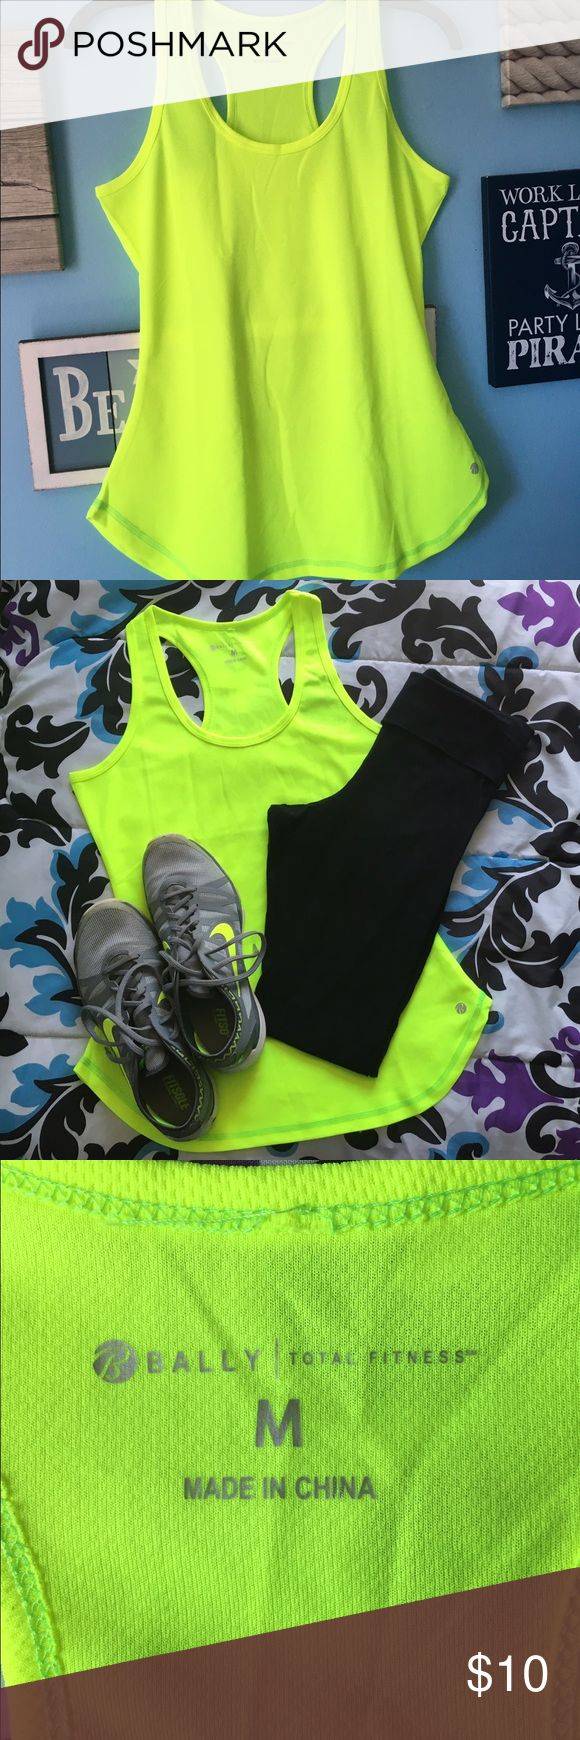 Bally Neon Yellow Tank Top Breathable tank top that is ready for spring workouts! Perfect flare for a slightly more feminine silhouette. Size medium but could fit small or medium - worn once Bally Tops Tank Tops